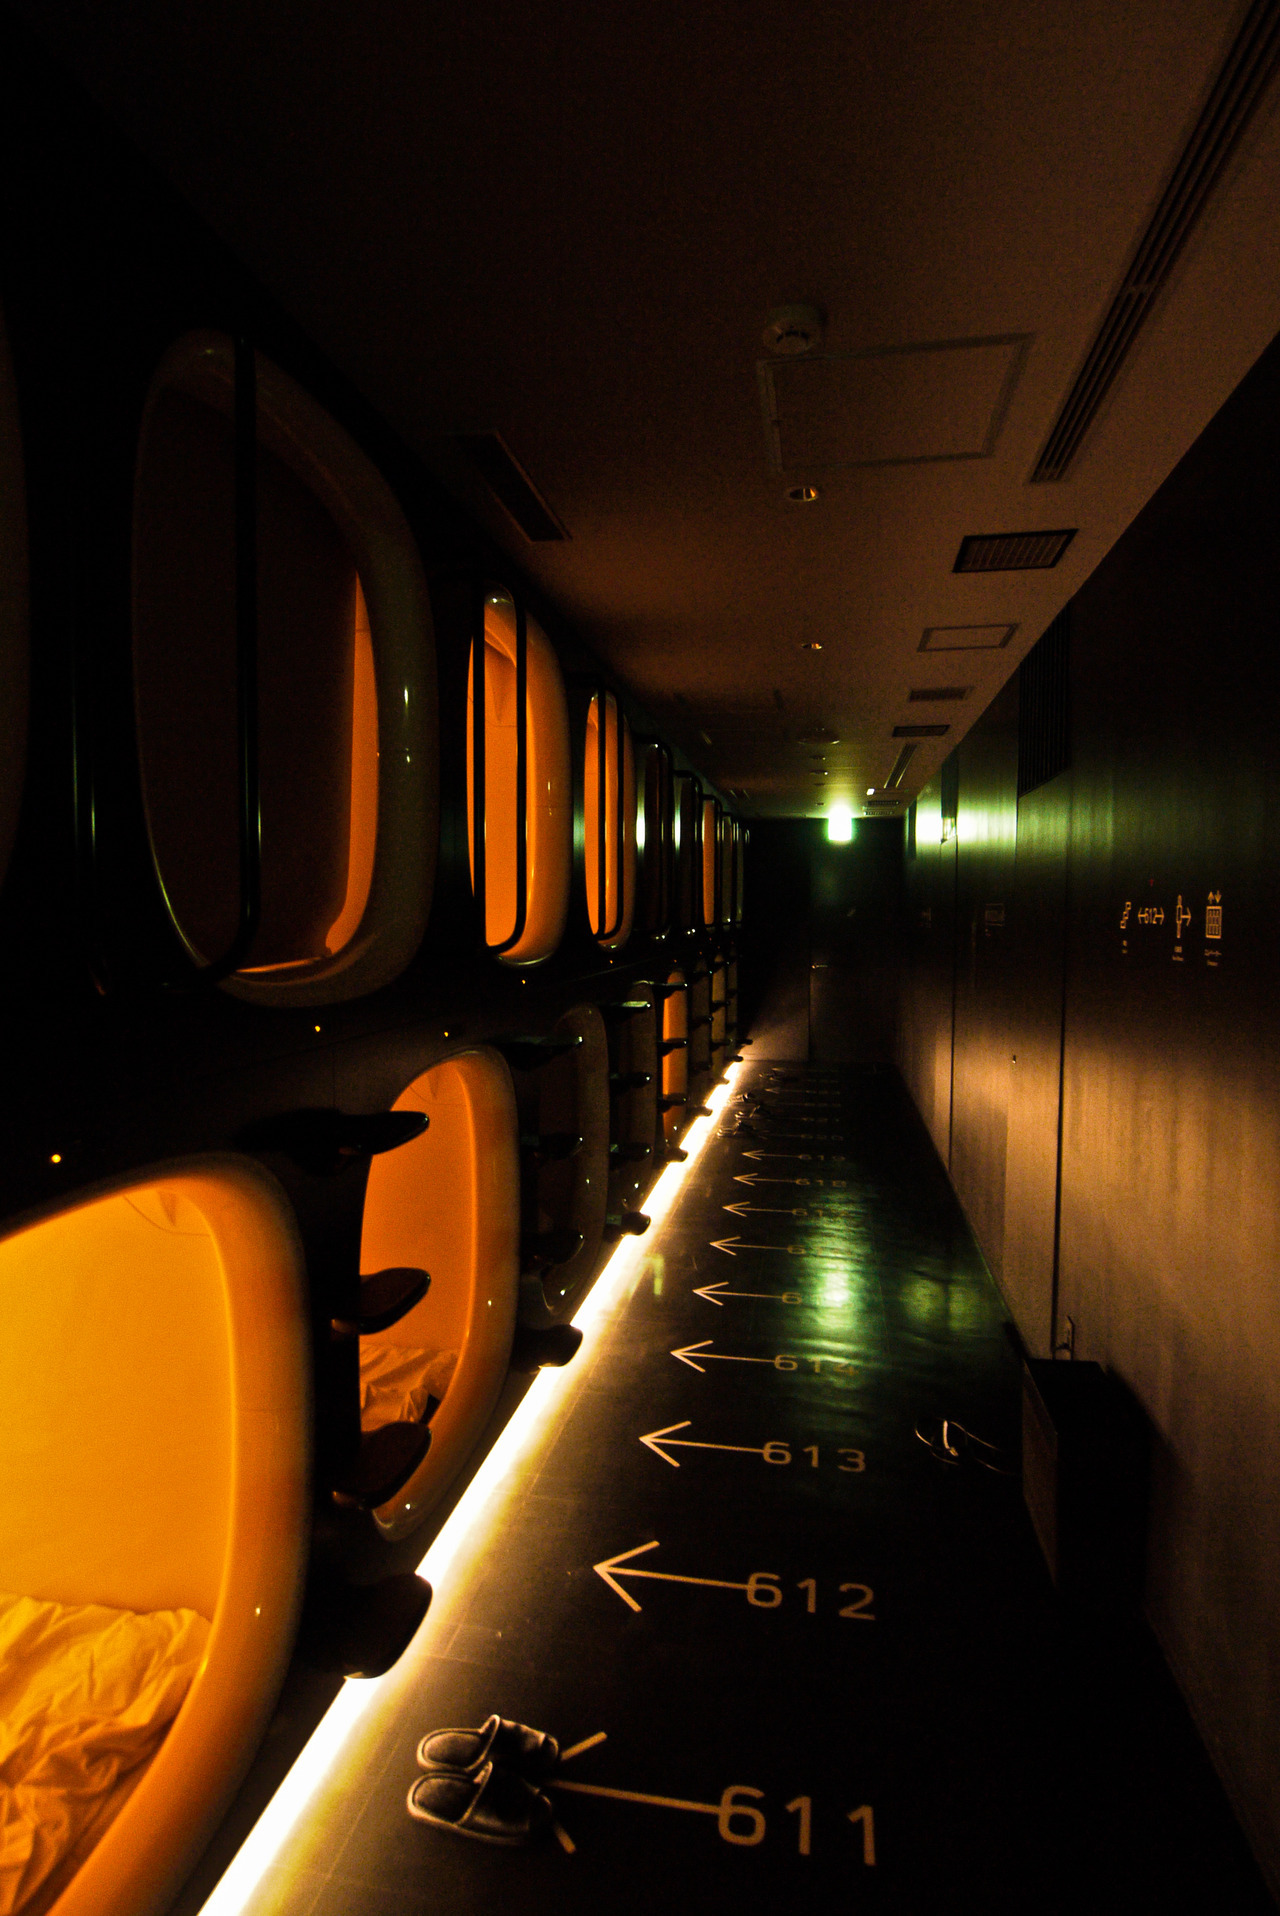 Capsule hotel I stayed at in Kyoto.  9hrs. Really cool place